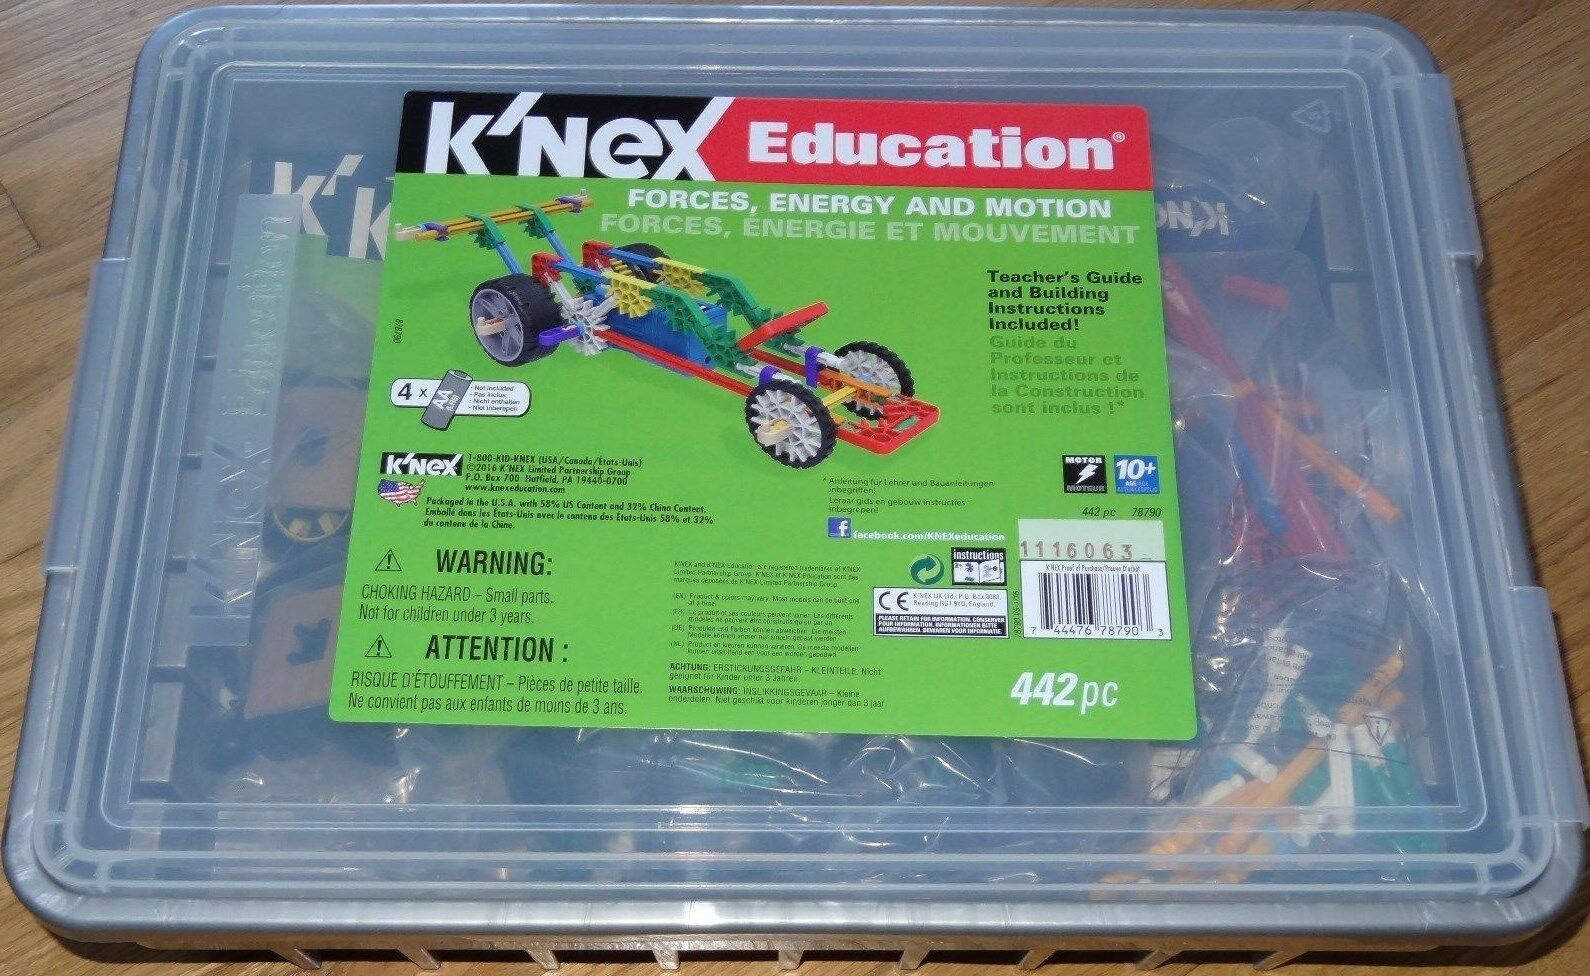 Forces Energy and Motion K'NEX Education Building Construction Set KNEX